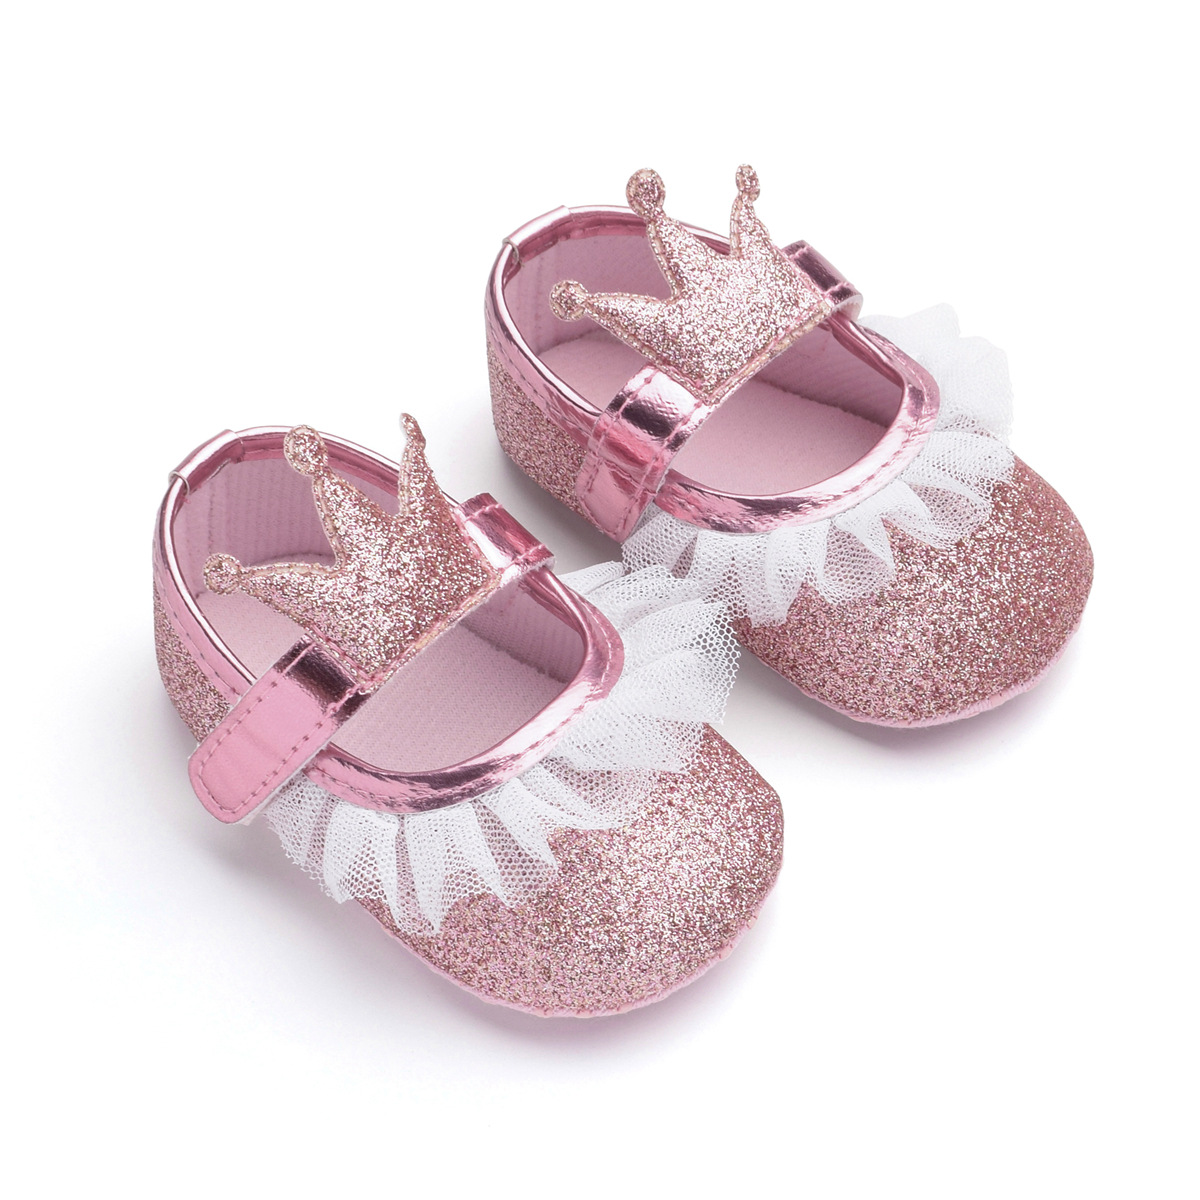 409463bb78 Details about 2019 Toddler Girl Crib Shoes Newborn Baby Bowknot Soft Sole  Prewalker Sneakers